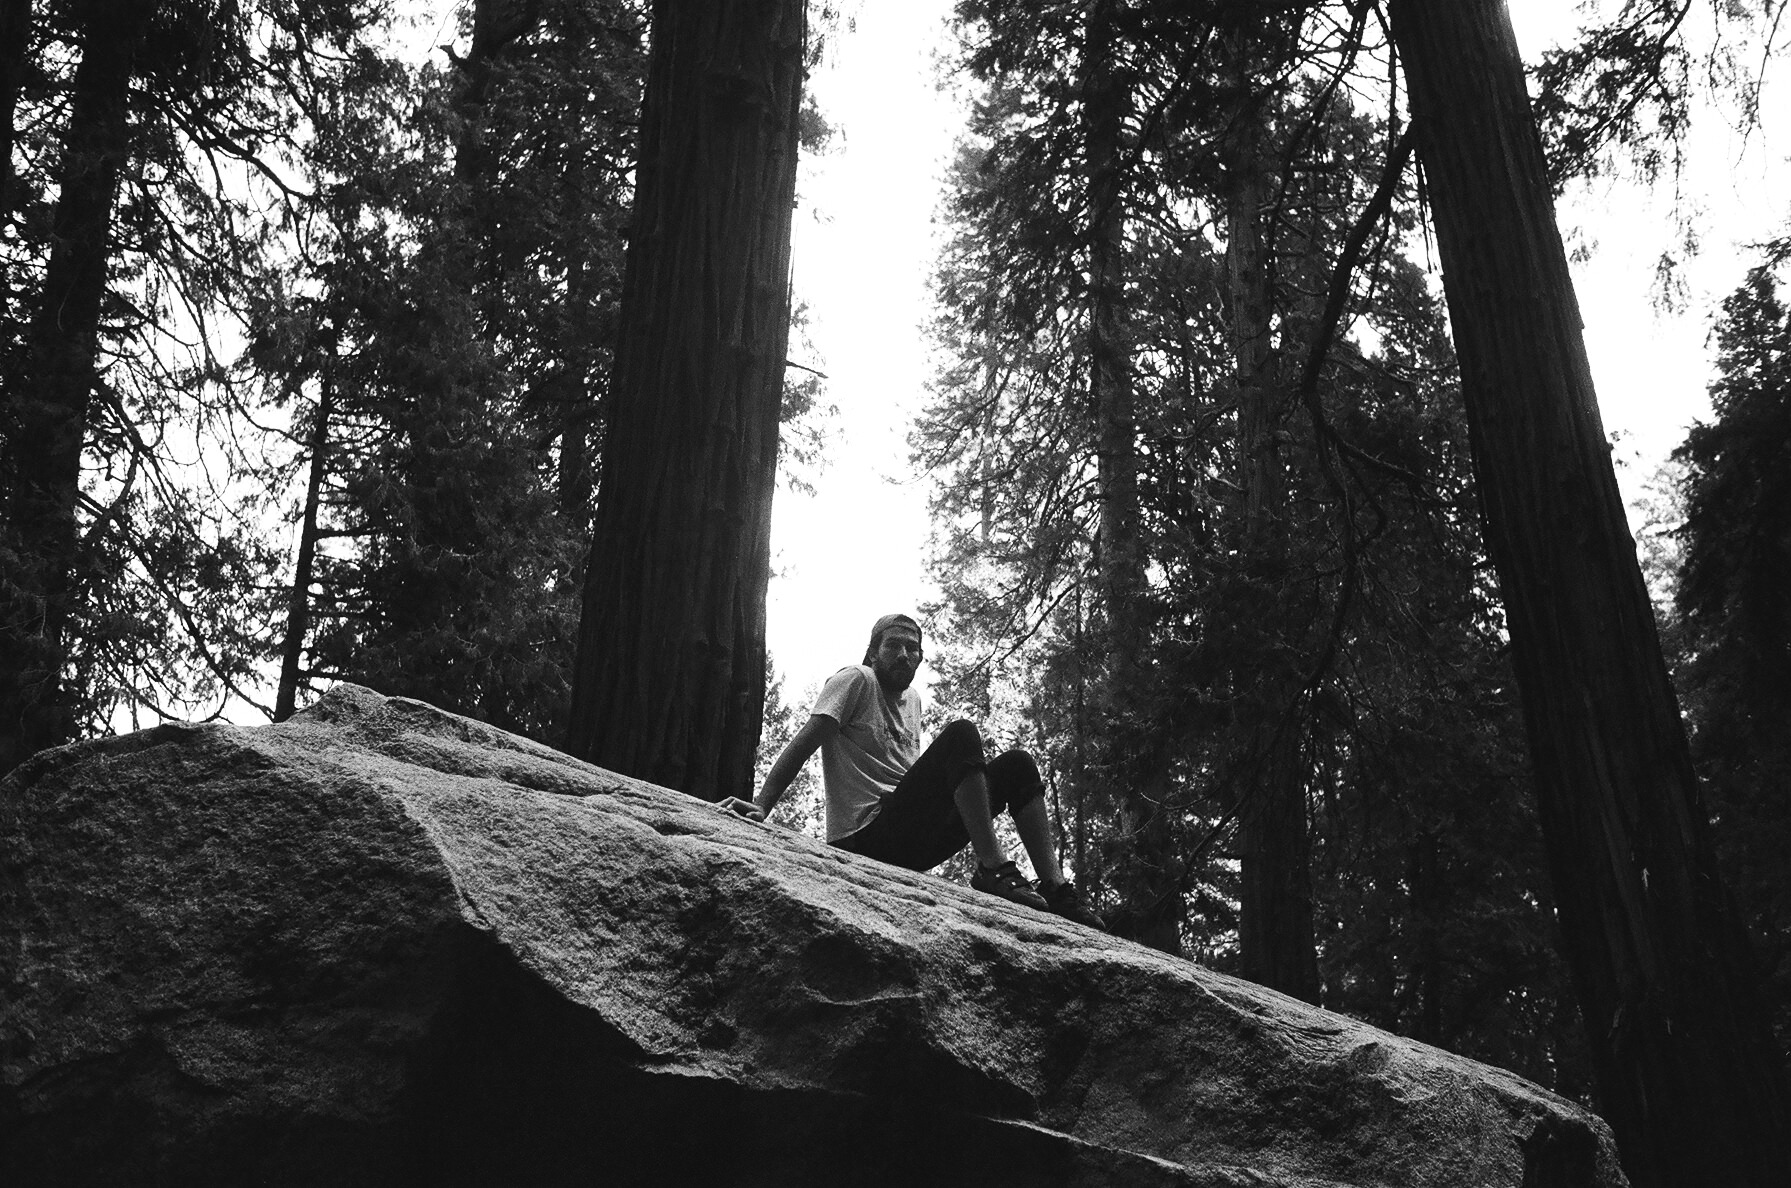 bouldering in camp 4 yosemite valley